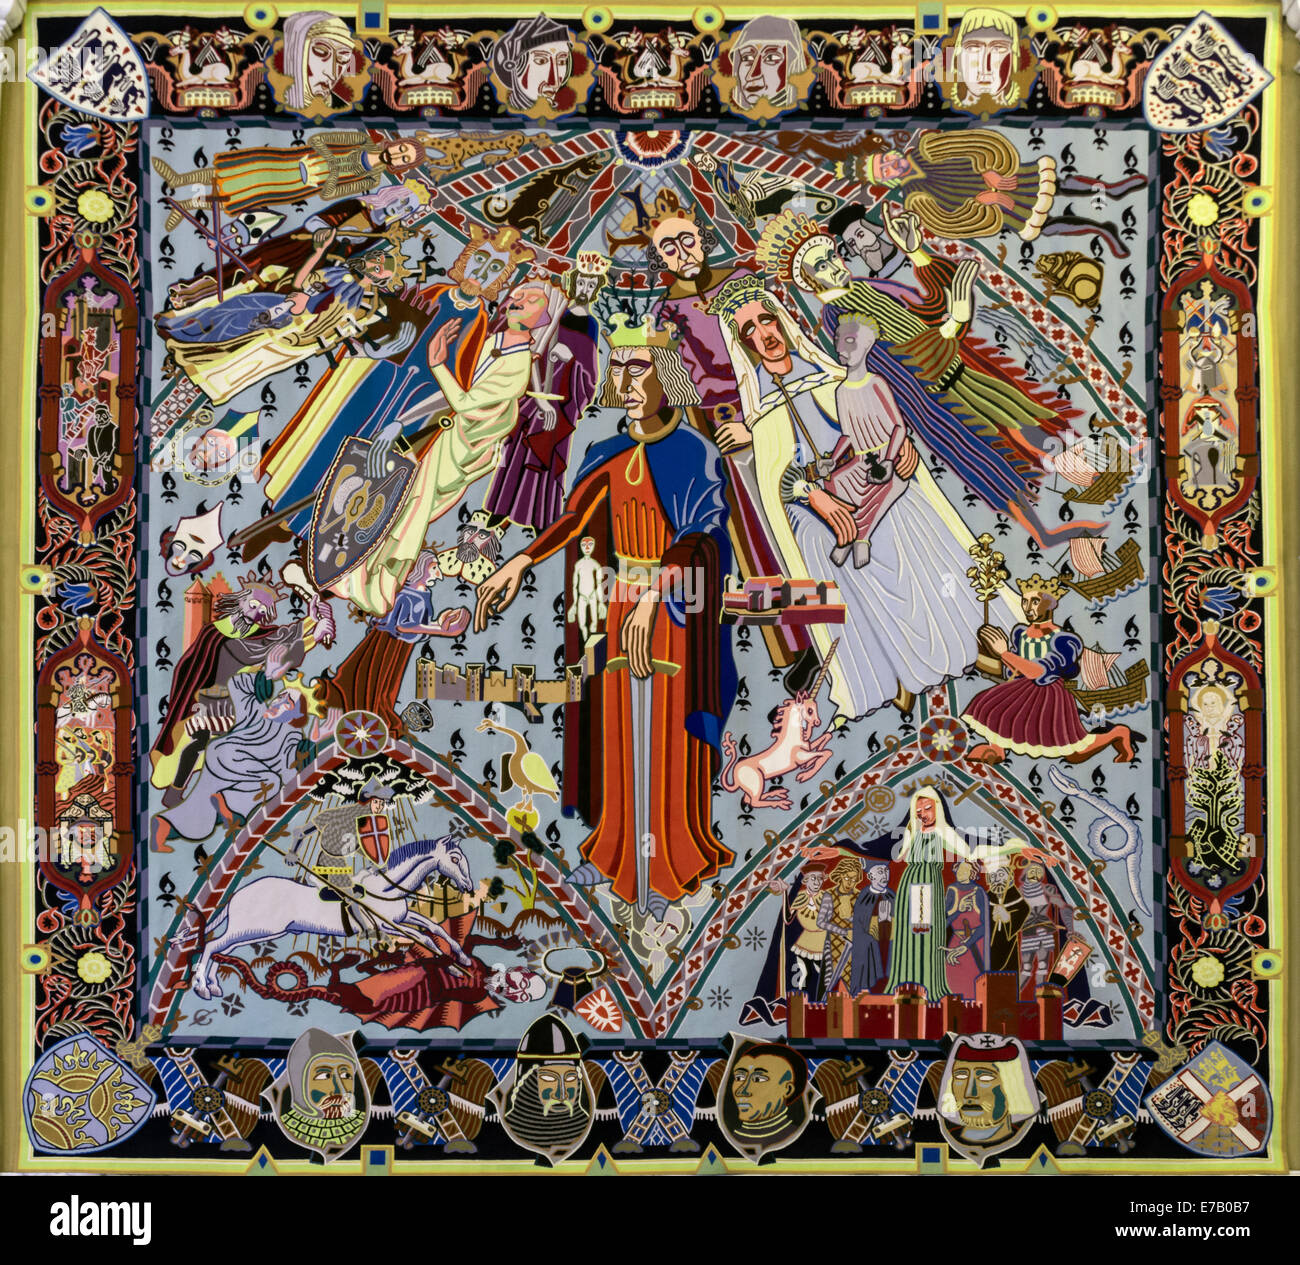 Bjorn Norgaard's tapestry 'Younger Middle Ages', Christiansborg Palace, Copenhagen, Denmark - Stock Image